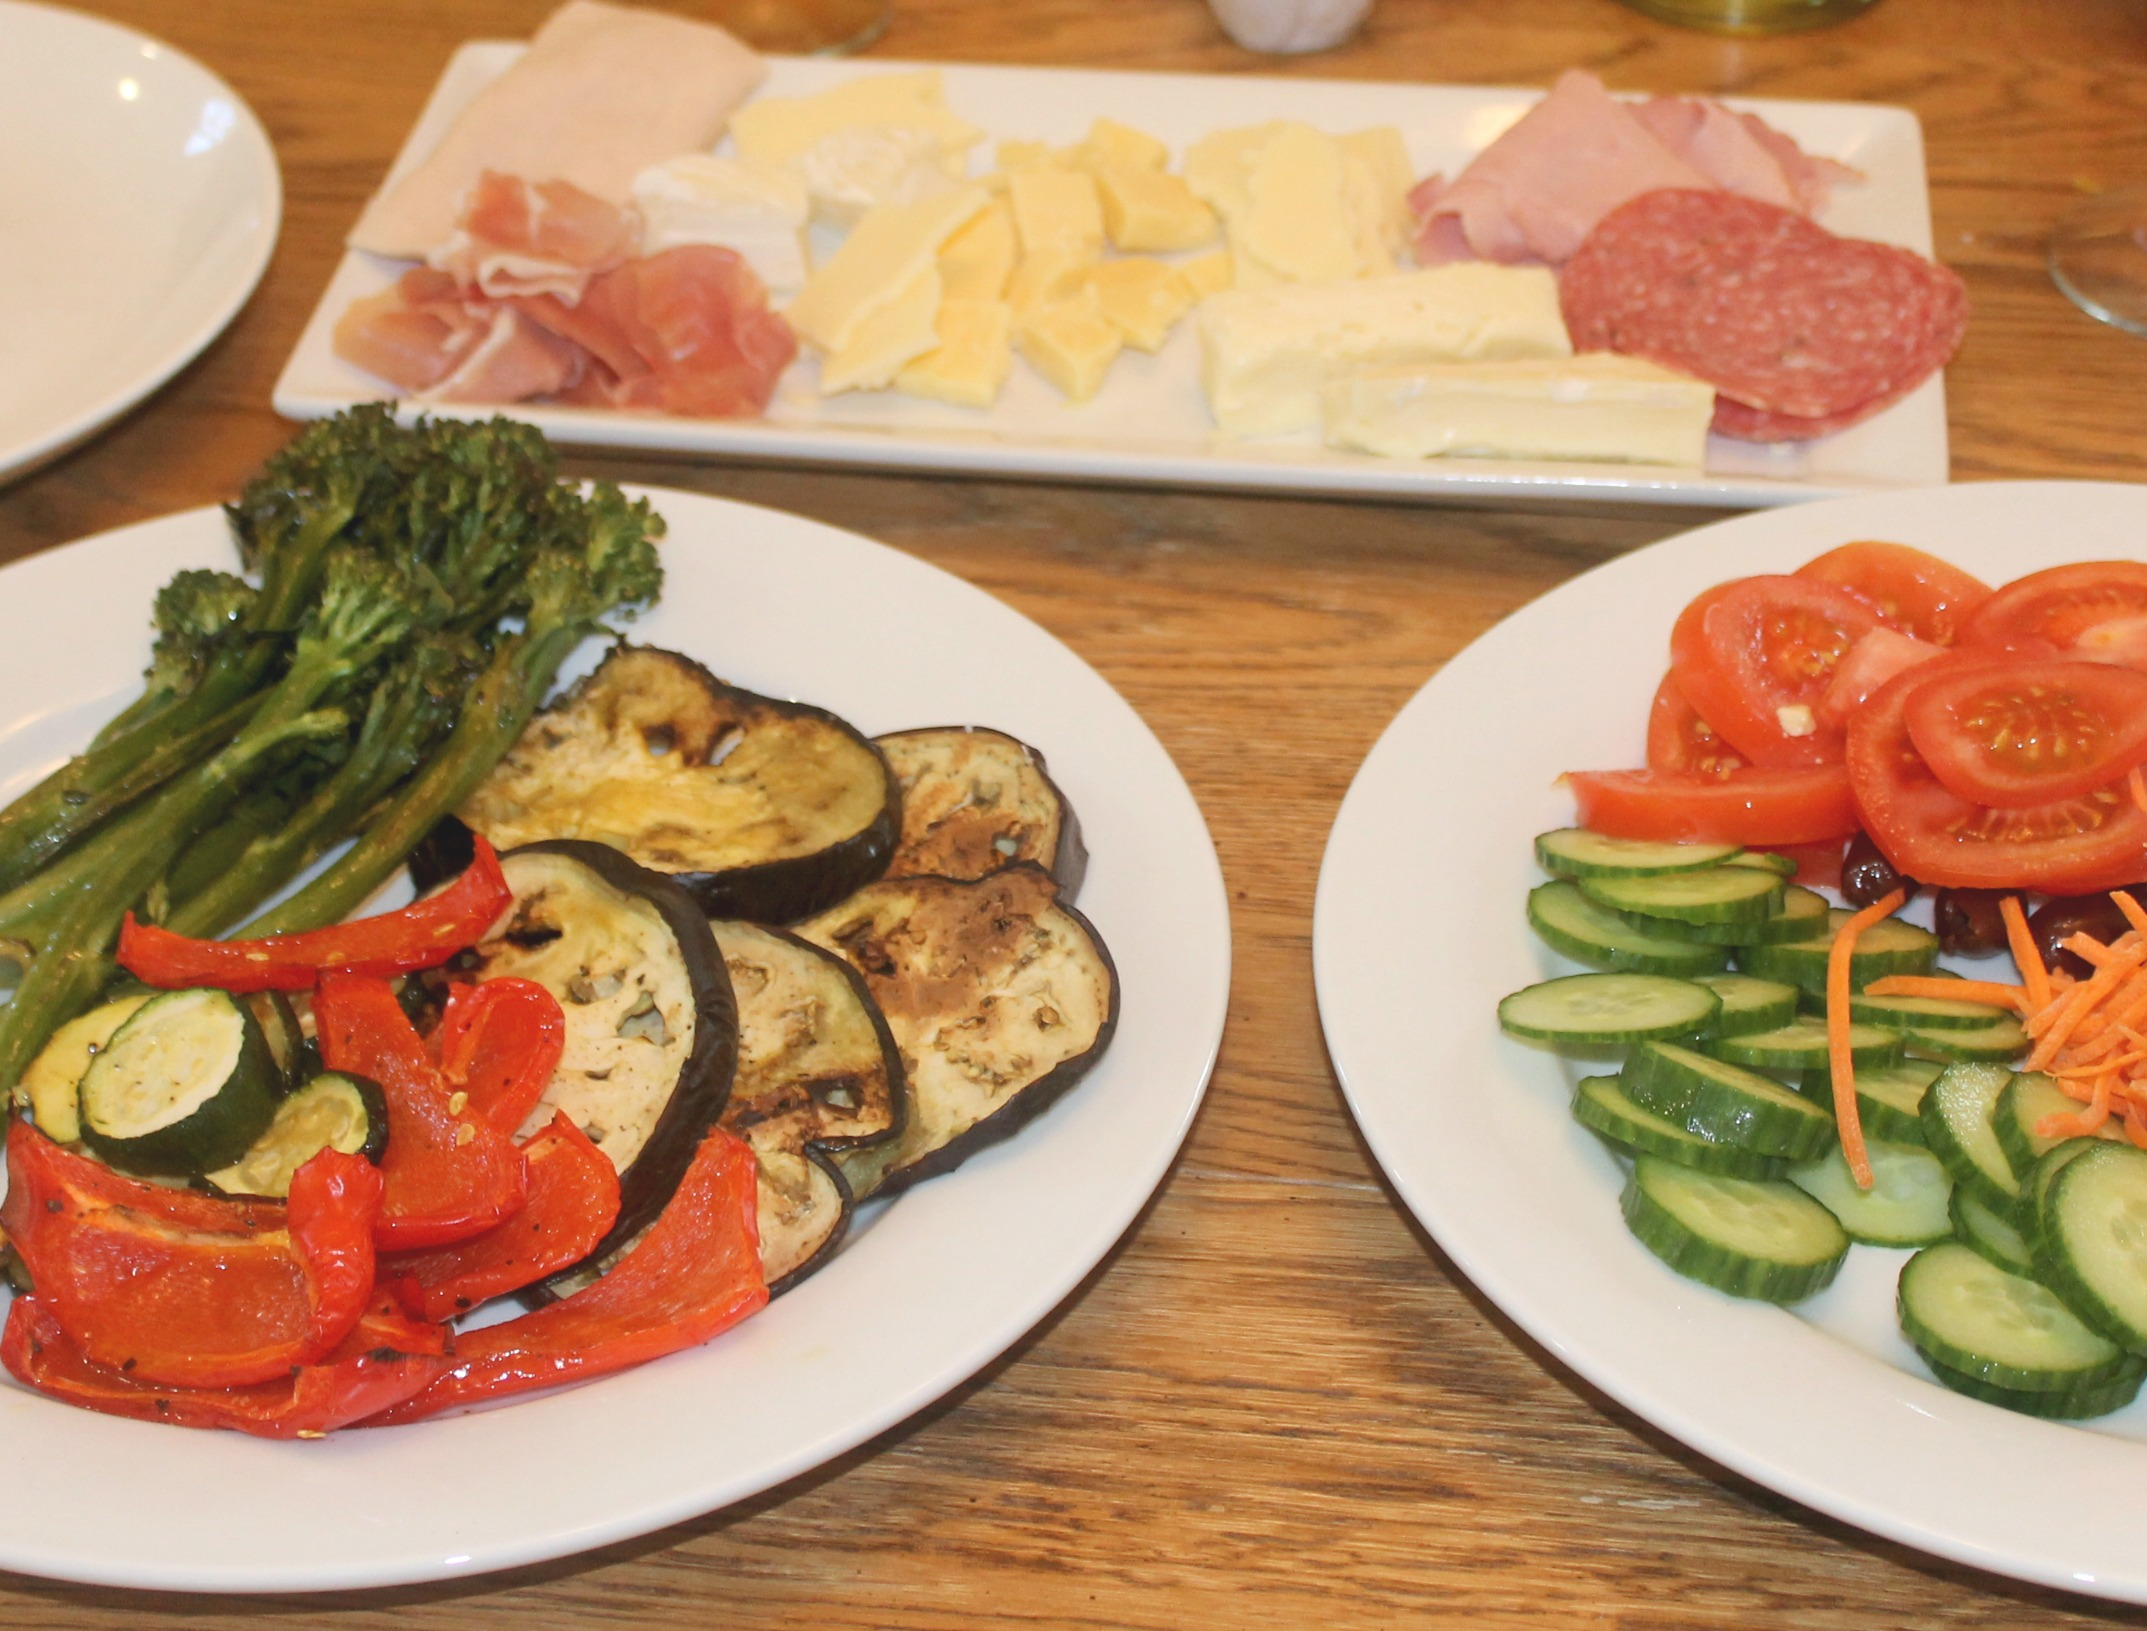 Homemade Antipasto Salad Spread